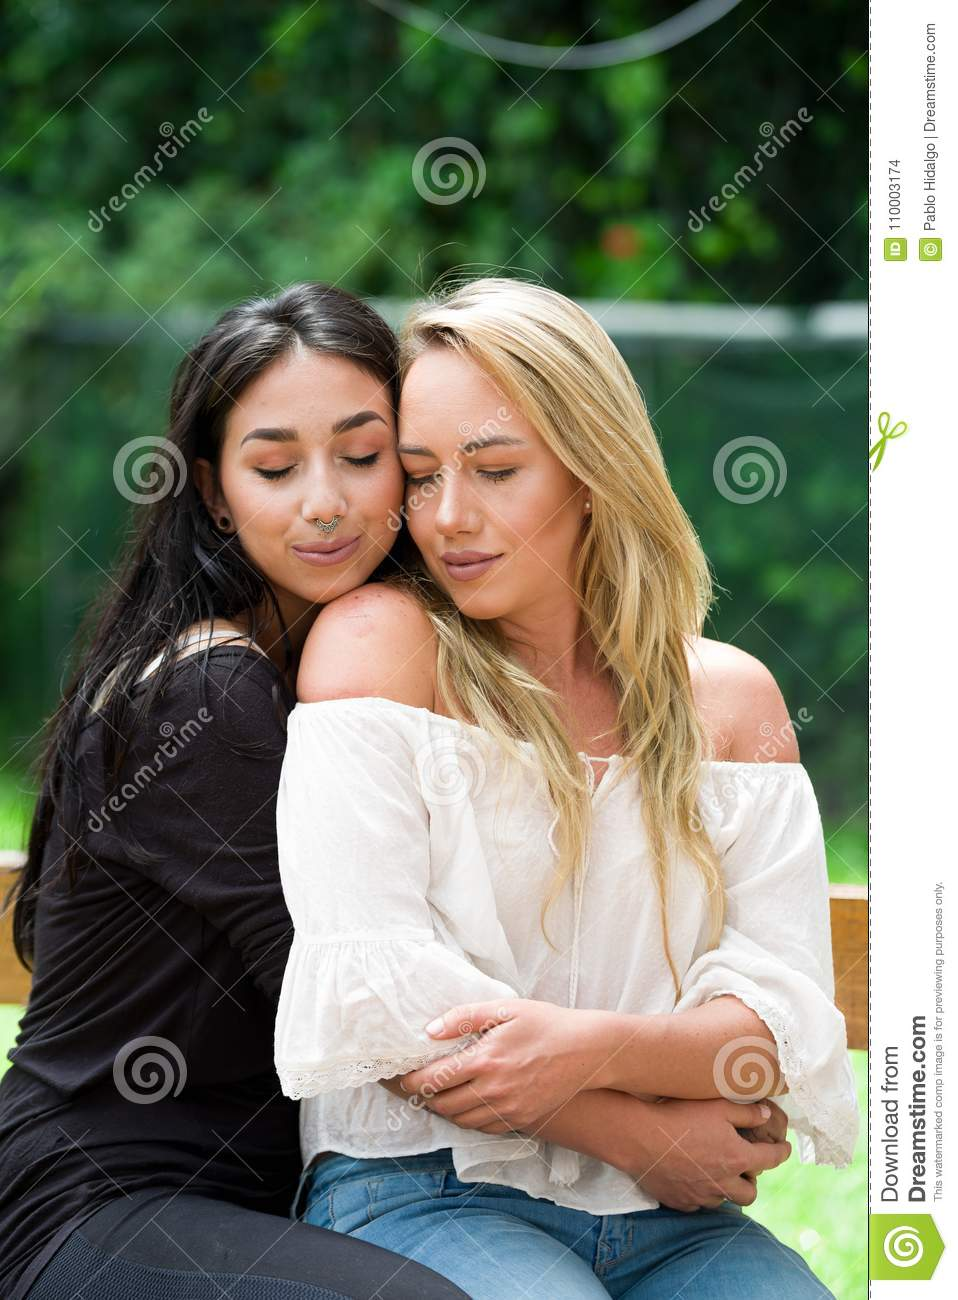 A Pair Of Proud Lesbian In Outdoors, Brunette Woman Is Hugging A Blonde Woman, In A -9361